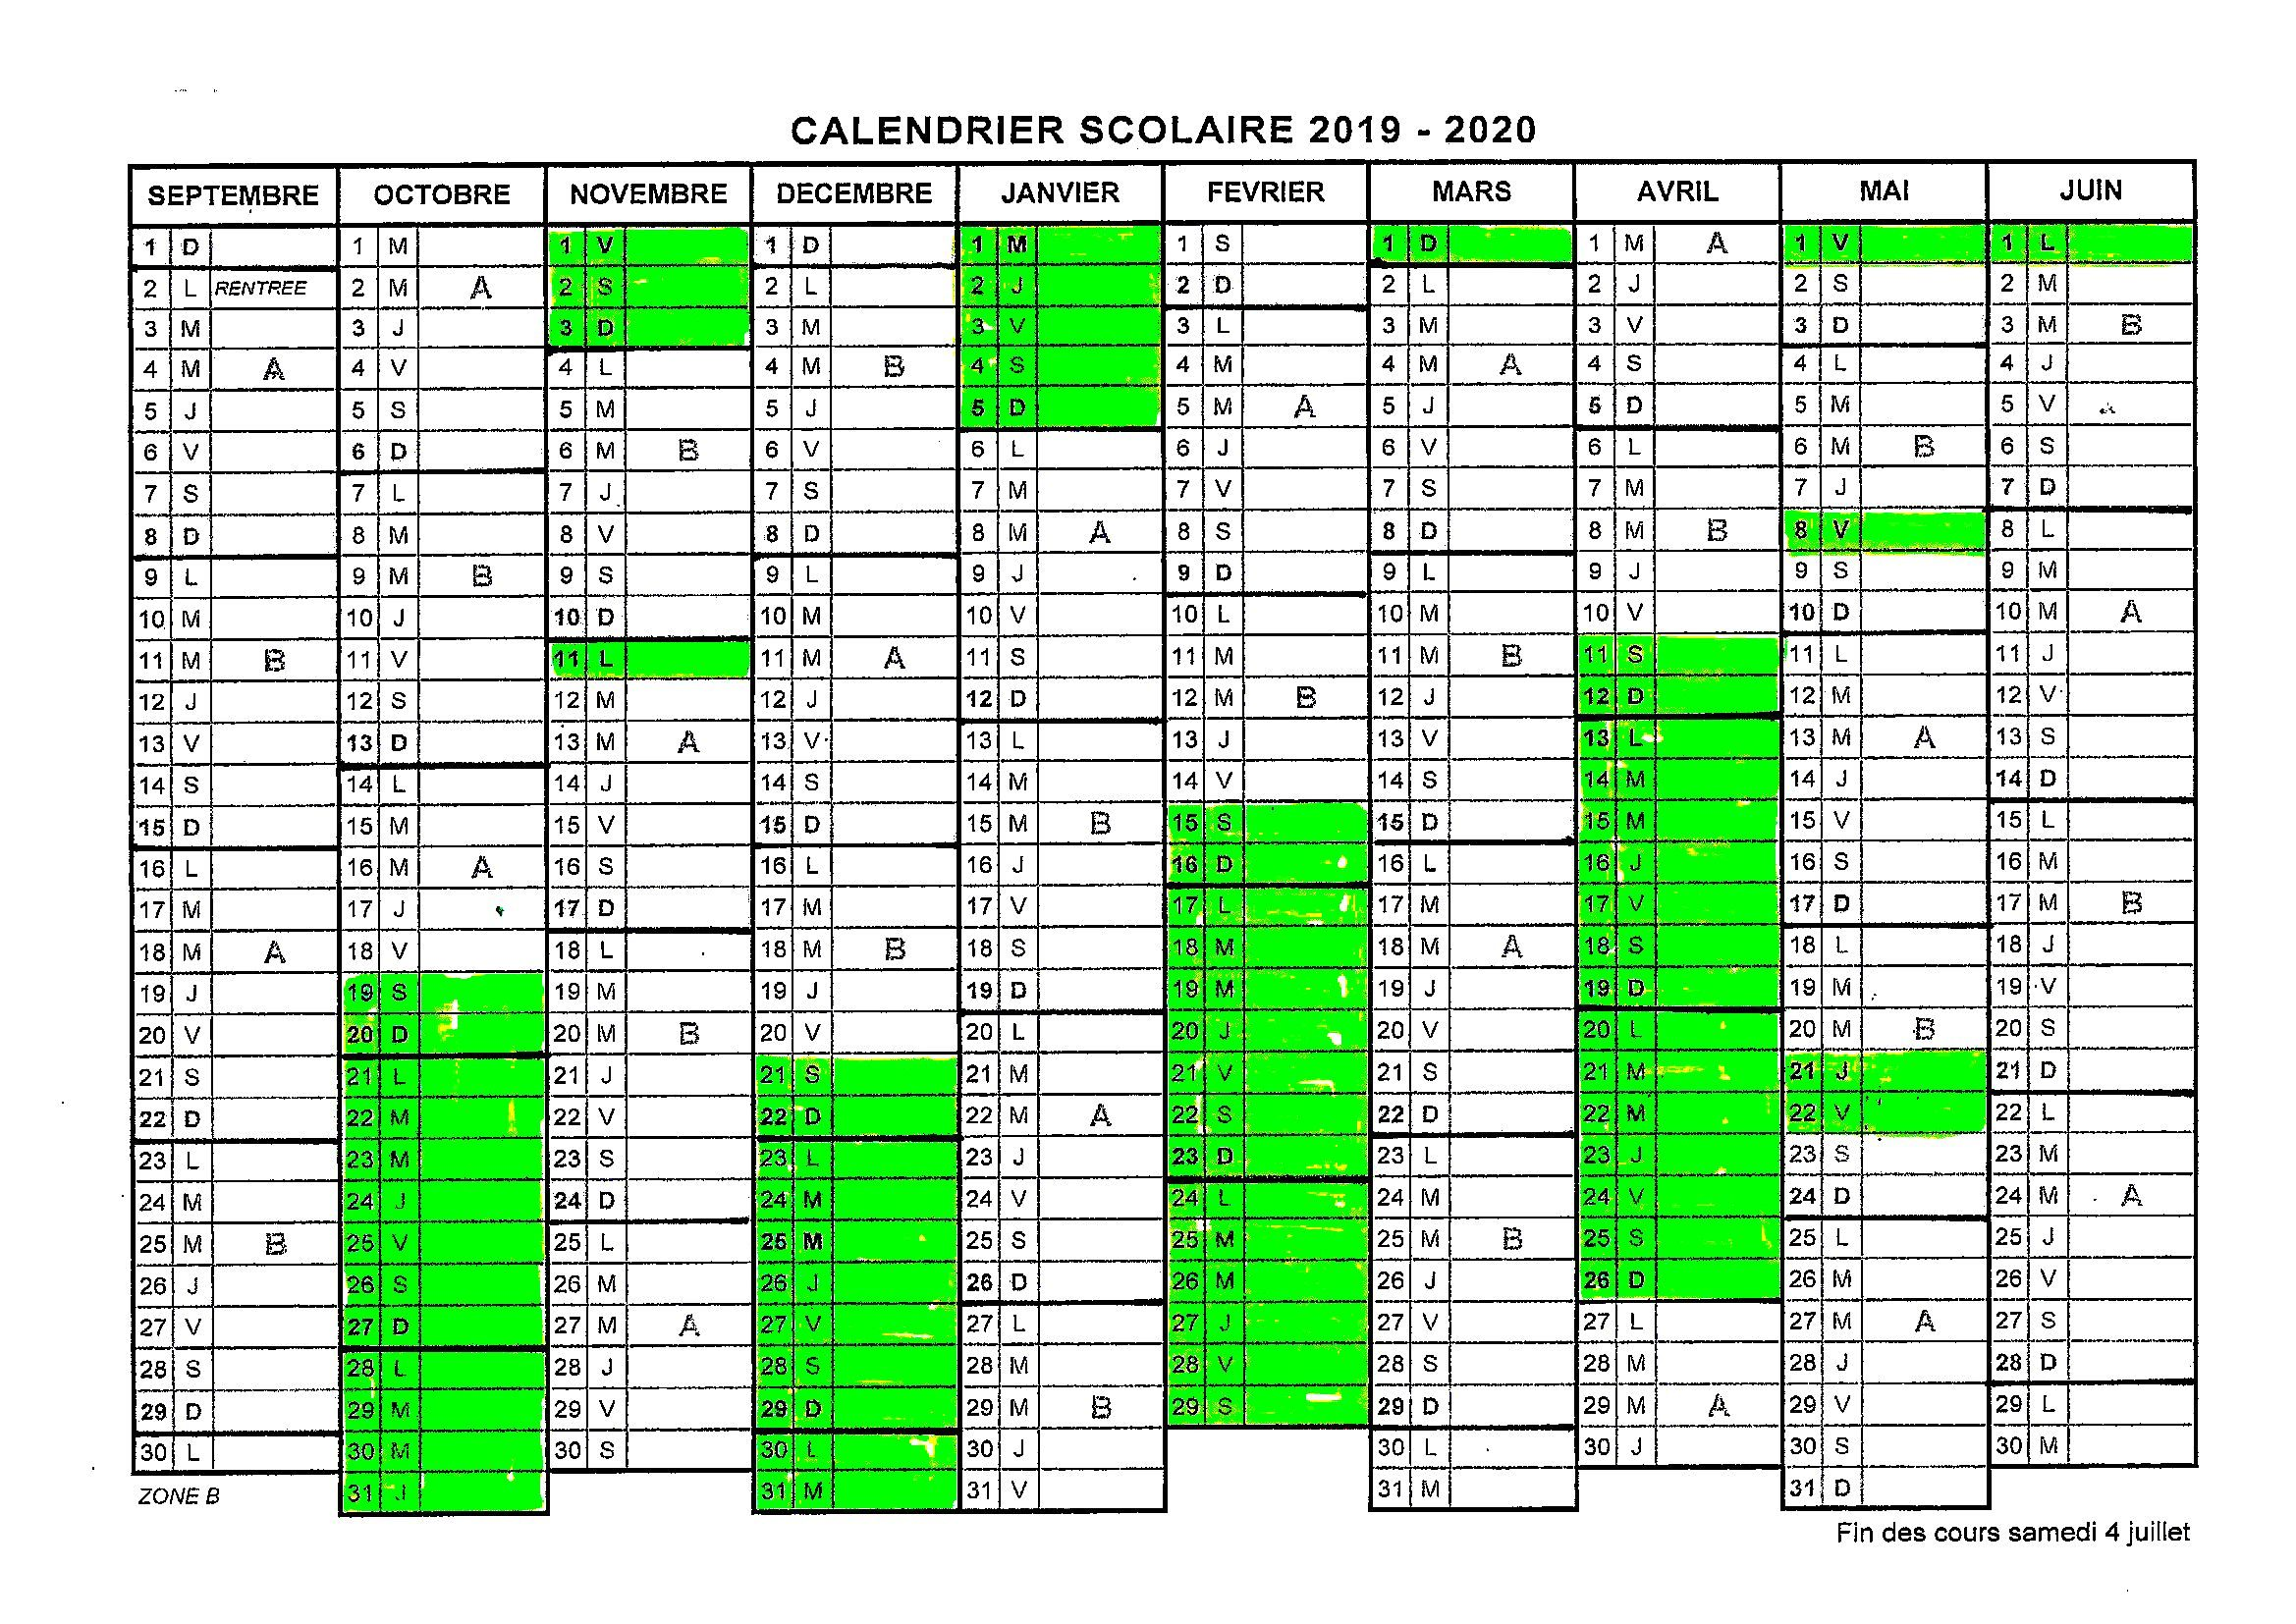 calendrier xcolaire 2019 - 2020.jpg